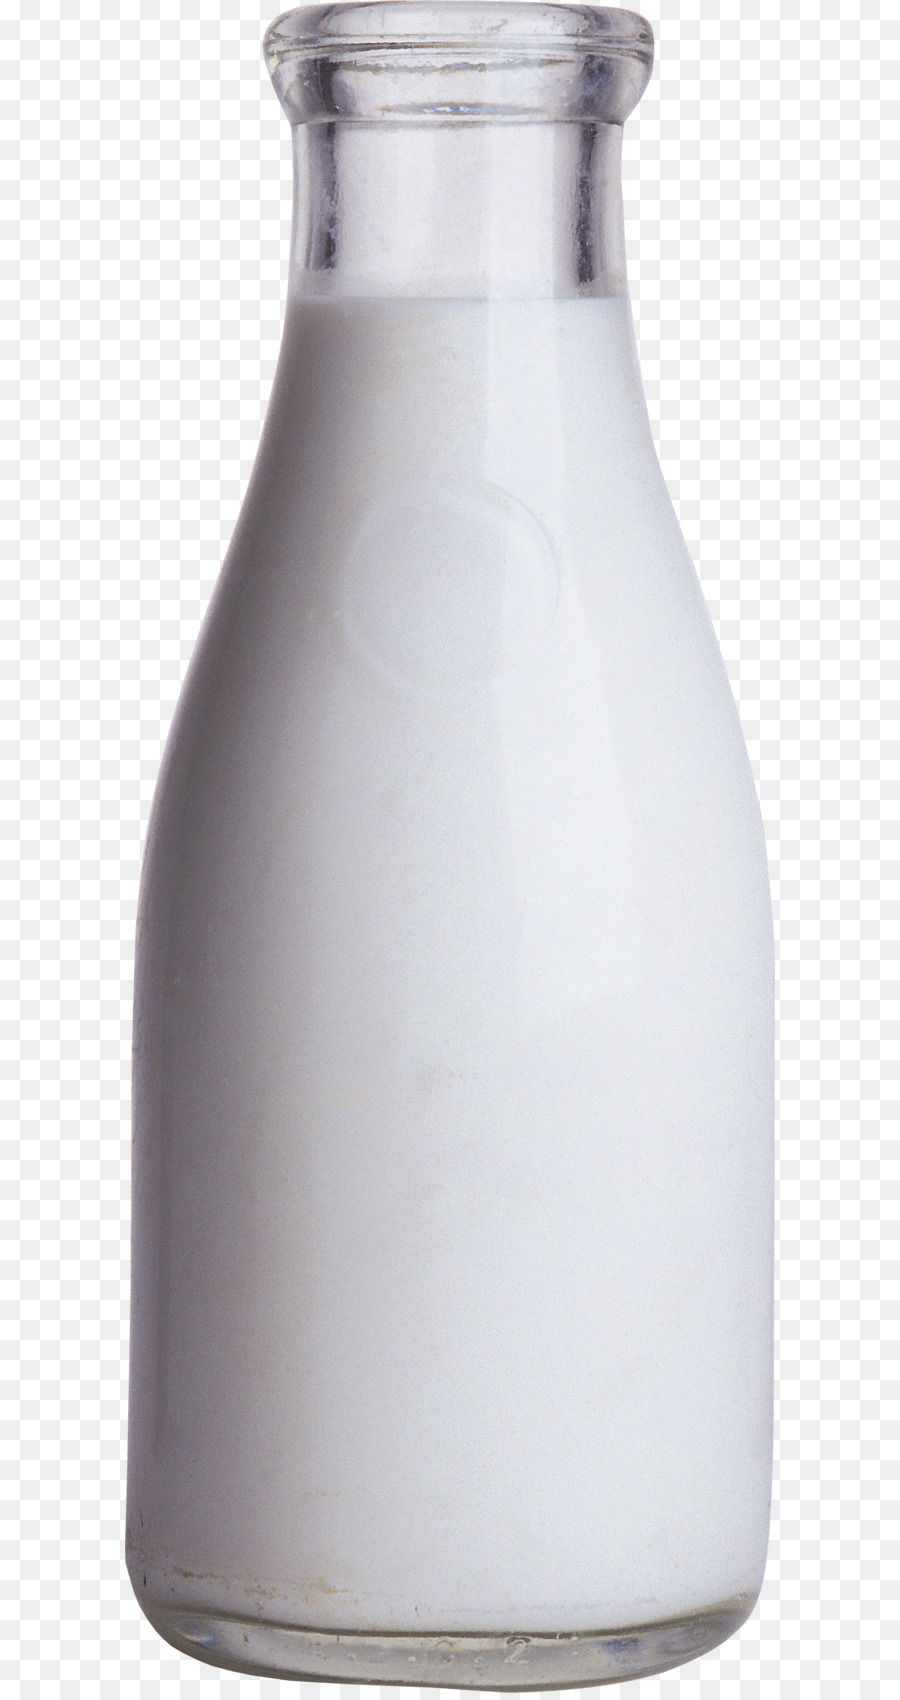 Glass bottle of milk clipart with straw png free Milk bottle Square milk jug - milk glass bottle PNG png download ... png free